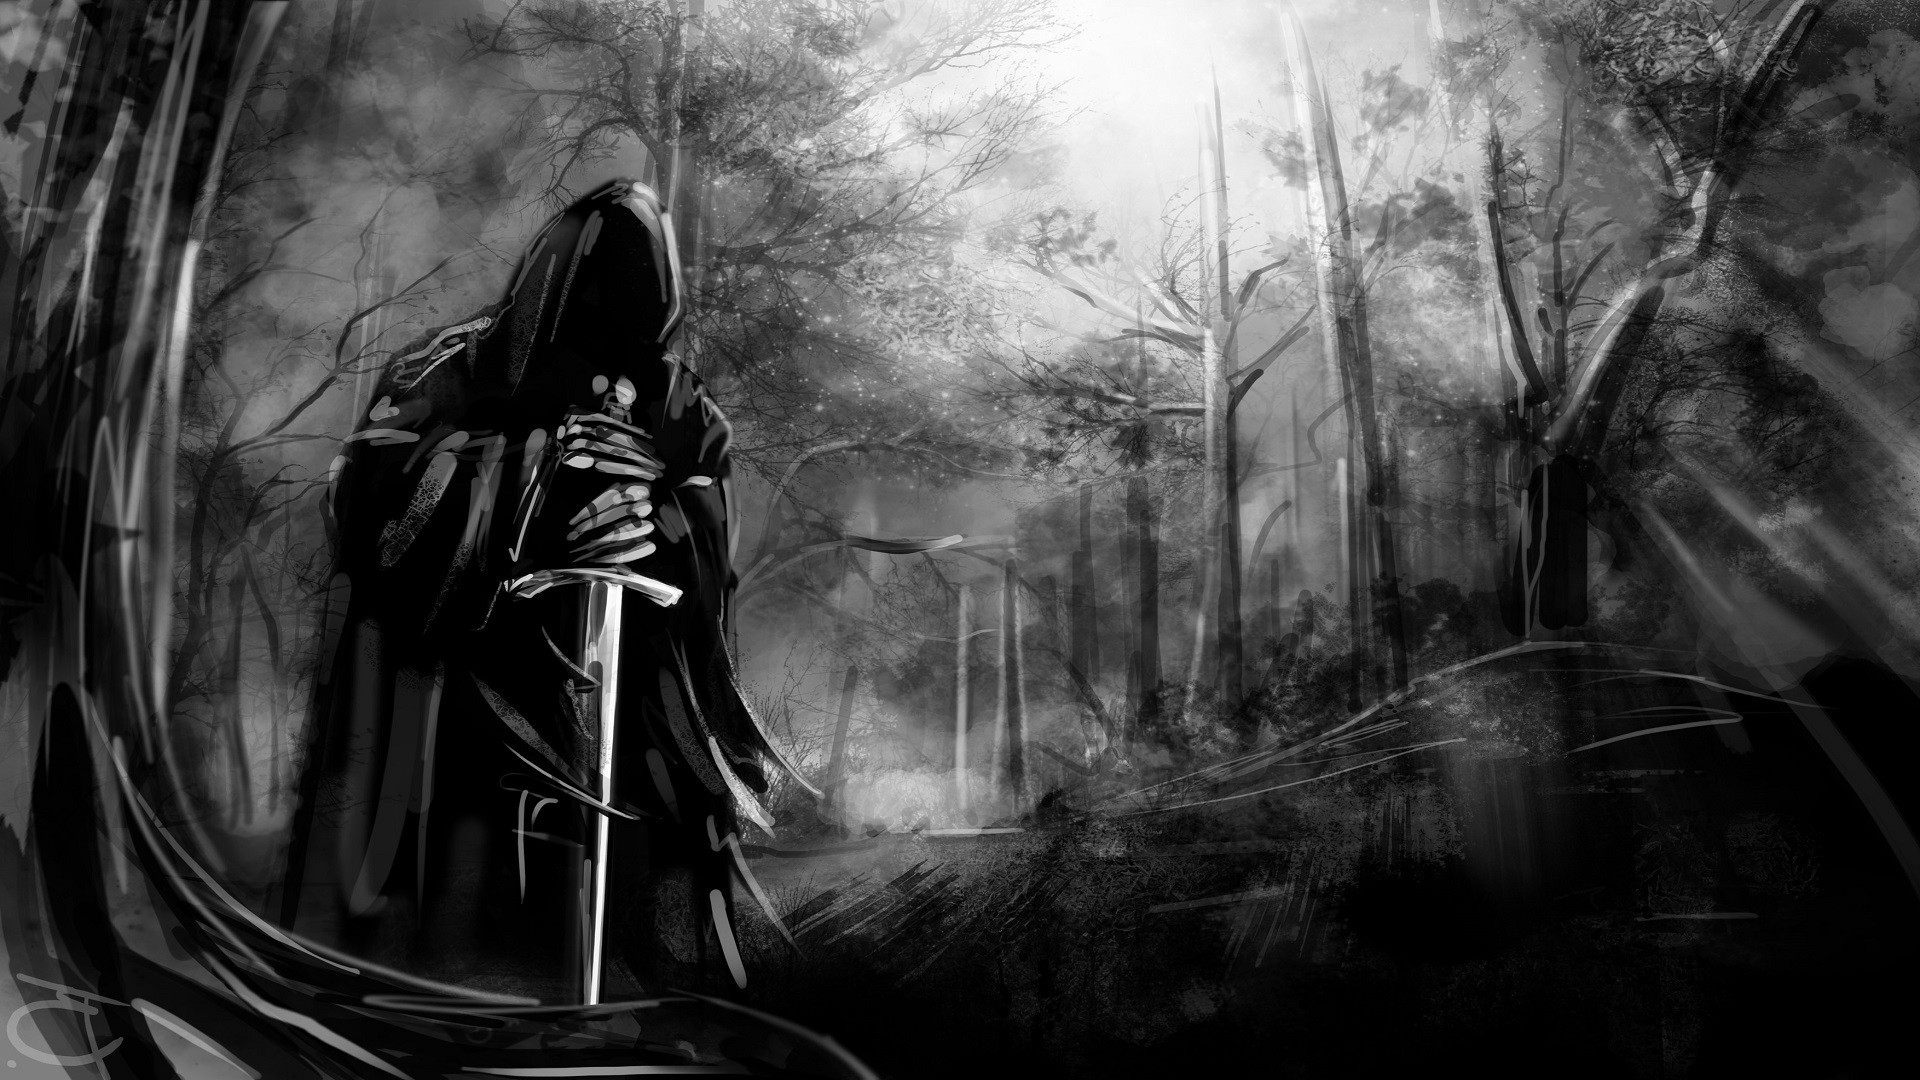 Ghost 3d Wallpaper Download The Lord Of The Rings Nazg 251 L Sword Wallpapers Hd